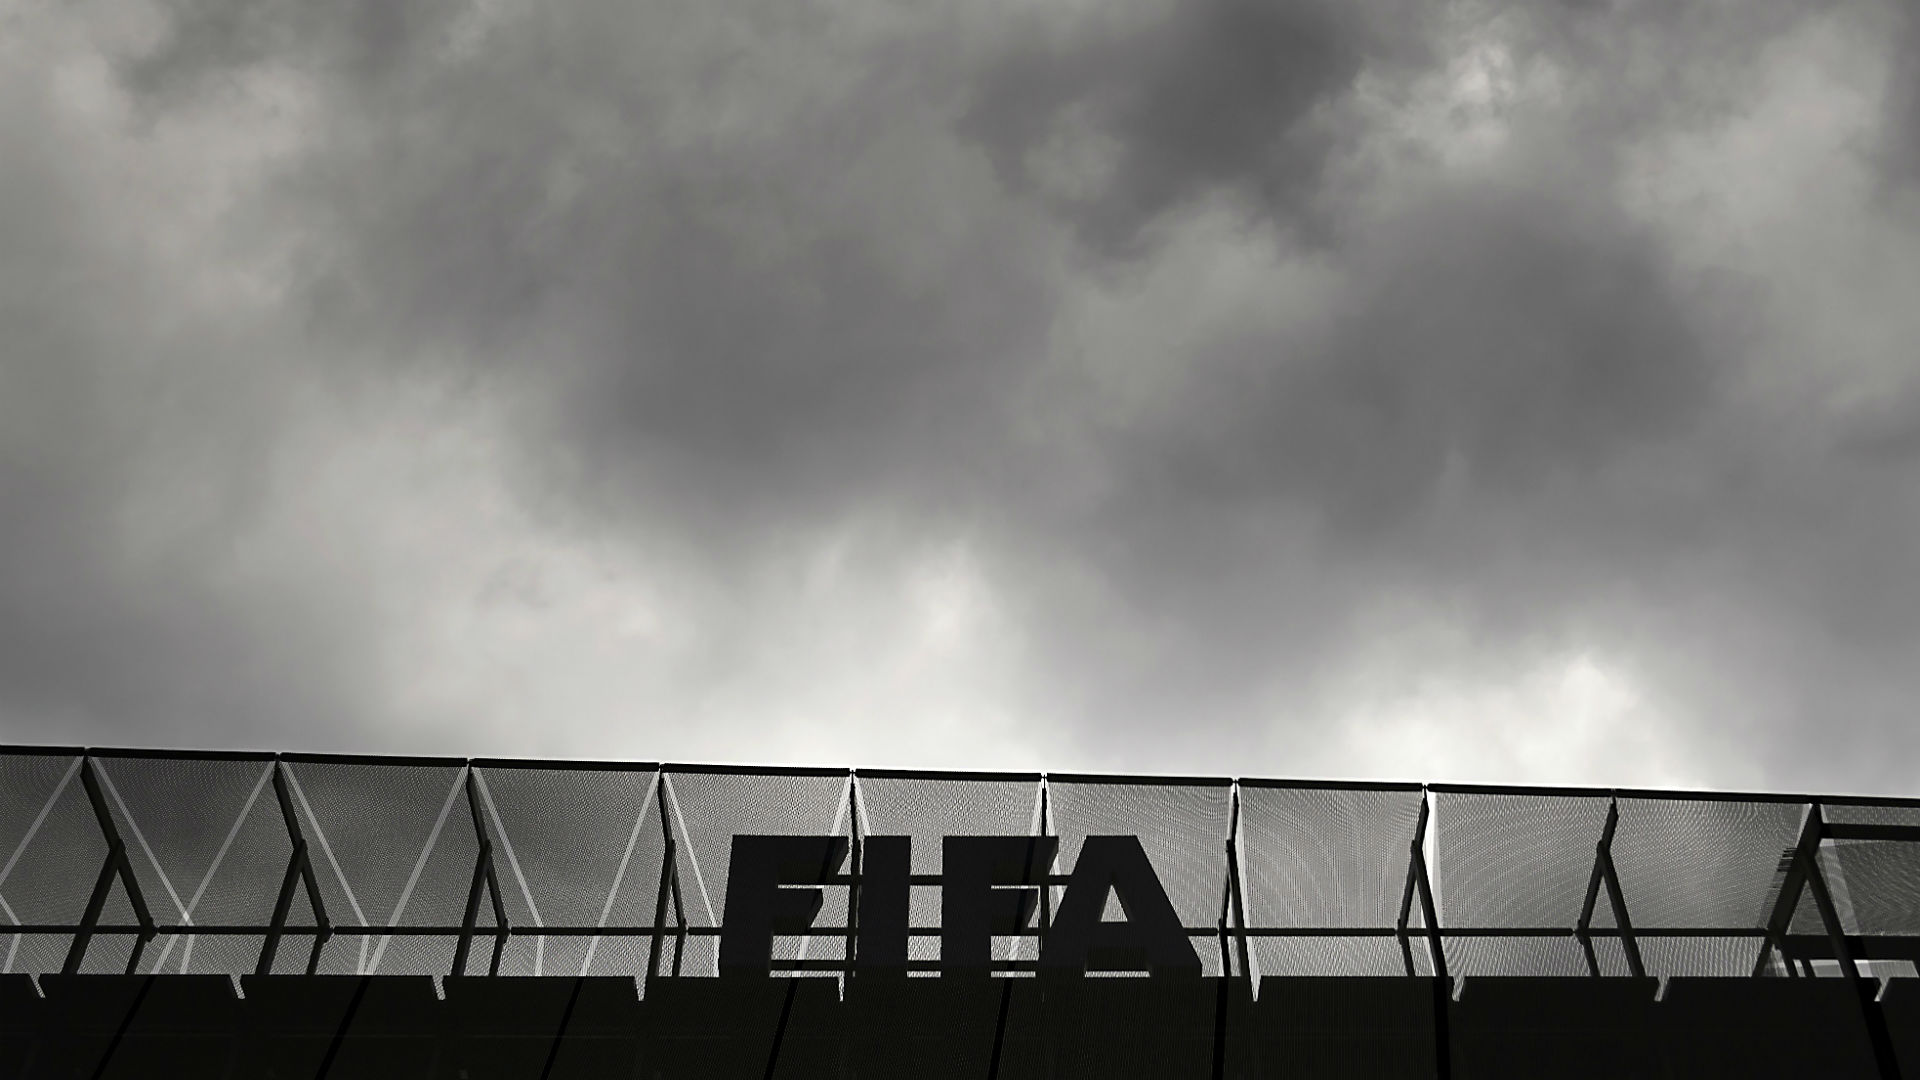 Now is the time to right FIFA's 2022 World Cup decision gone wrong